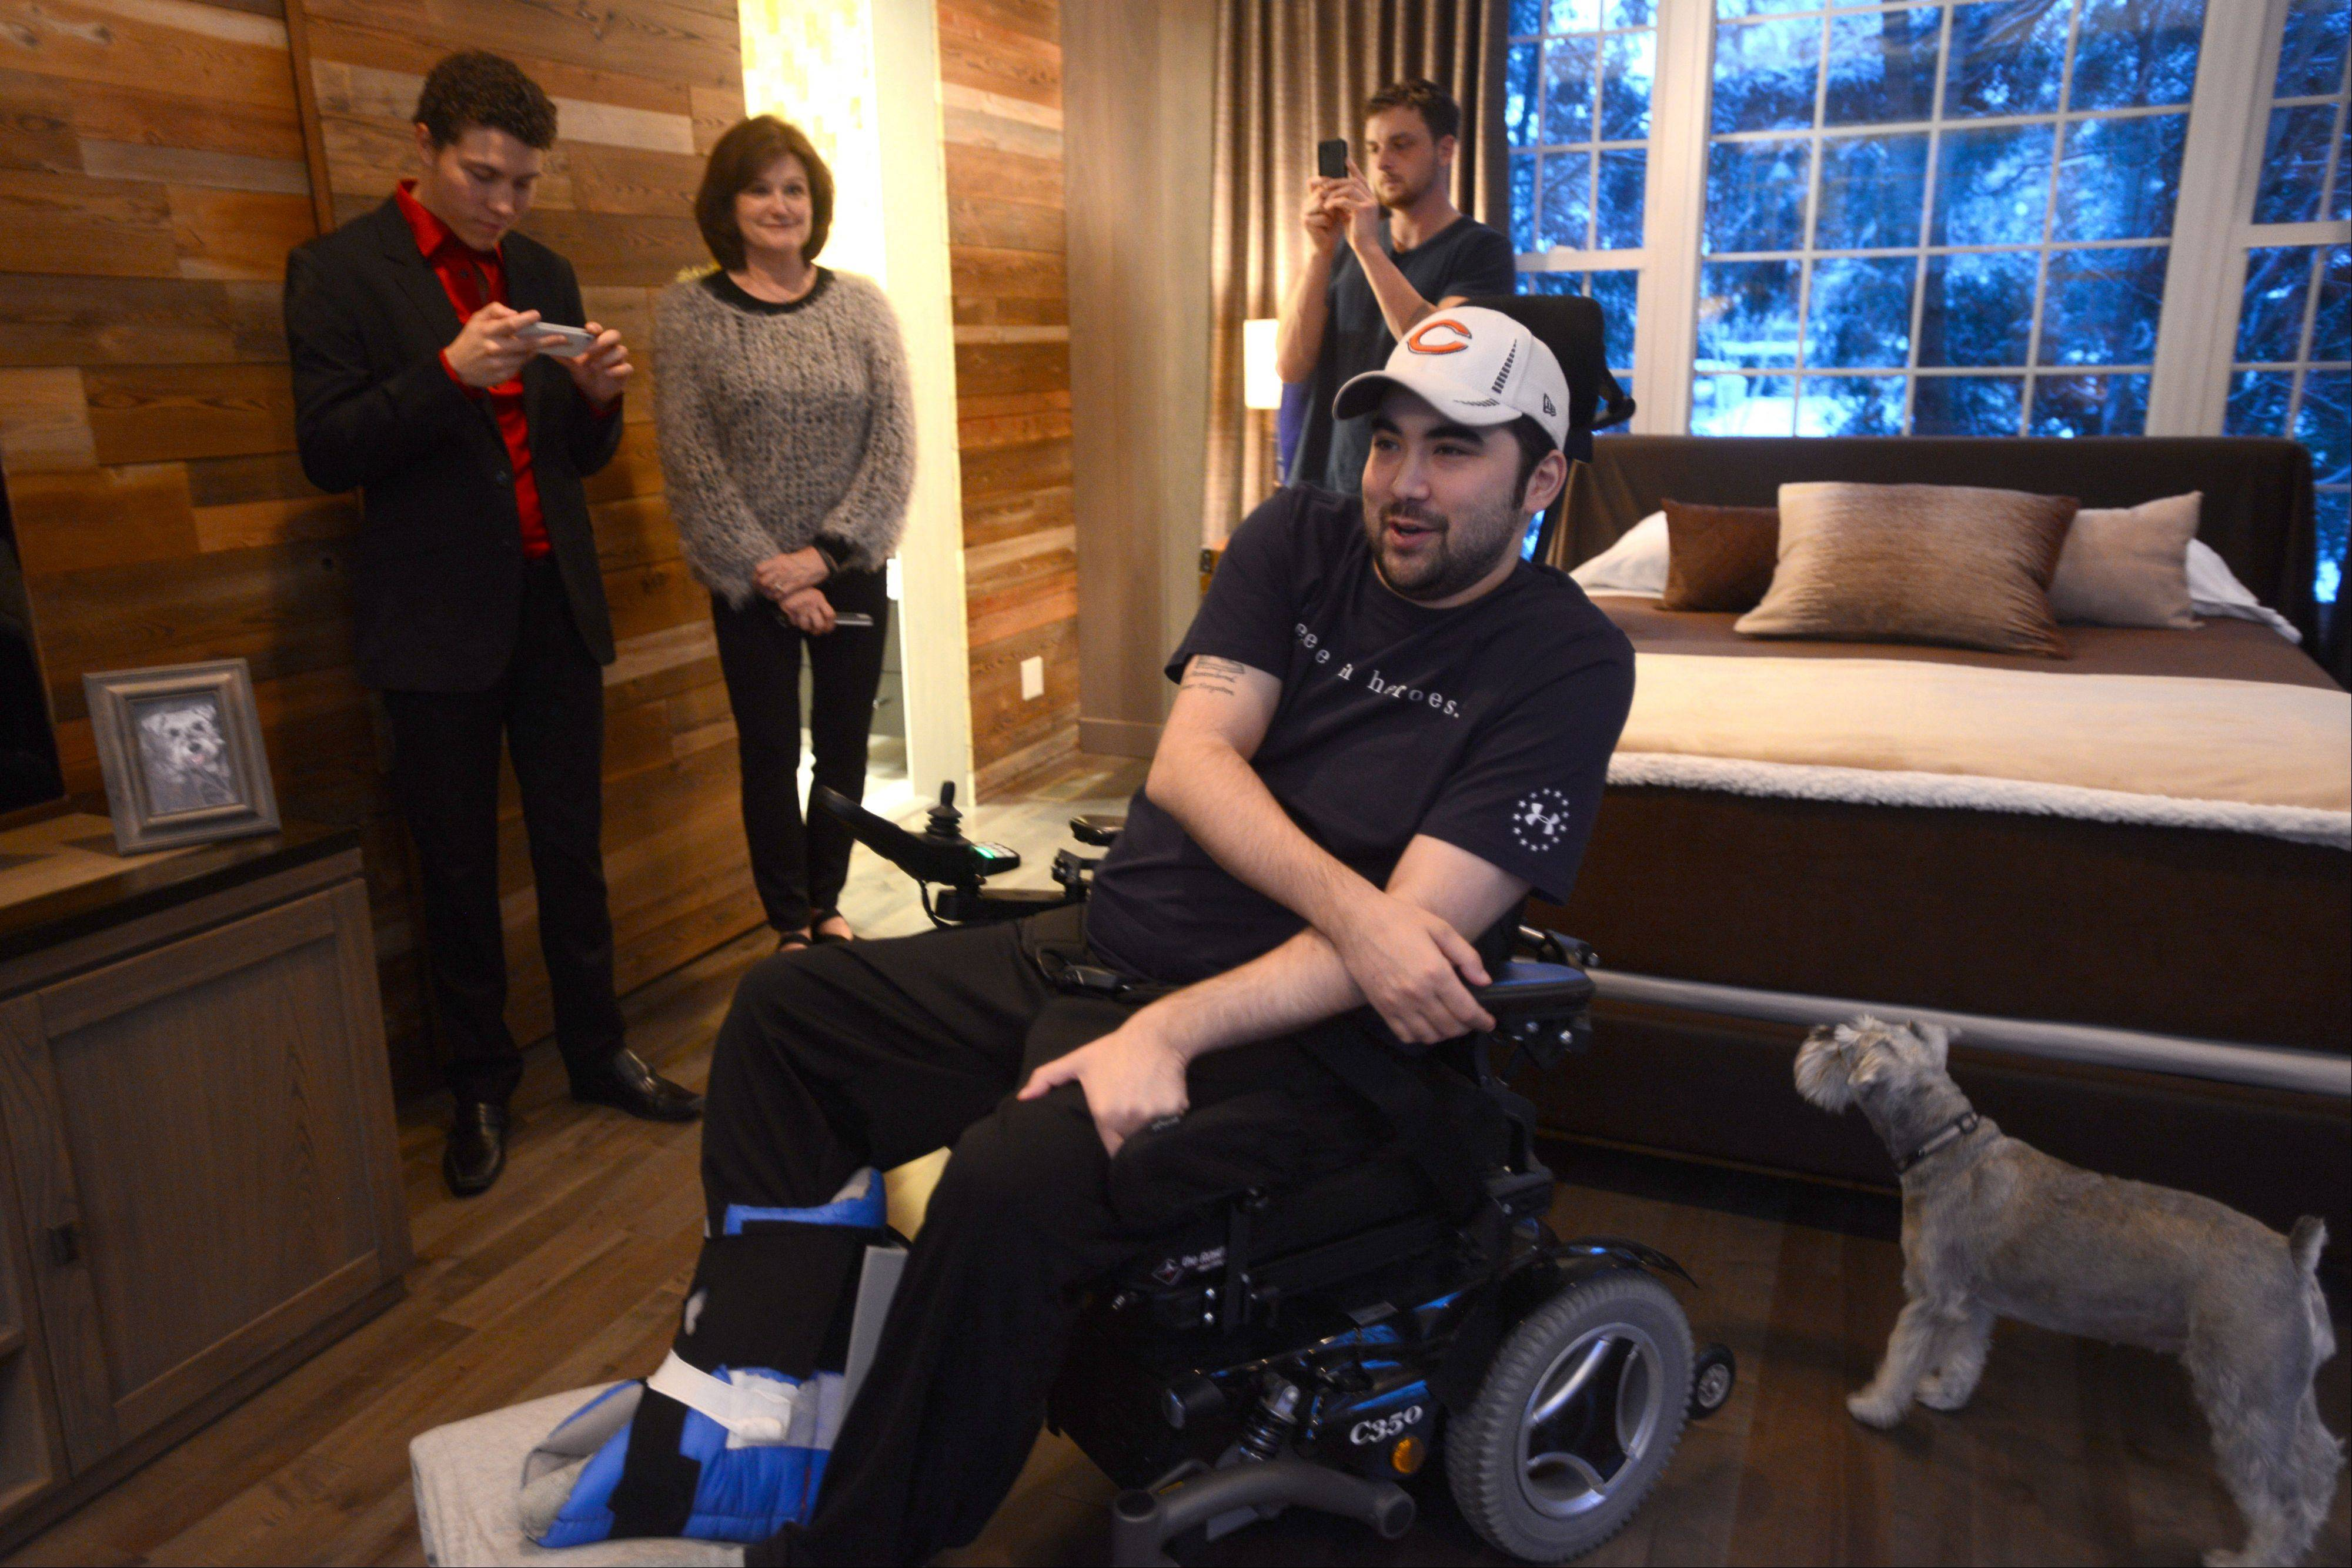 Dan Tsutsumi took a first look at a makeover of his Arlington Heights home on Monday afternoon. Tsutsumi, a veteran who served tours of duty in Iraq, was paralyzed after a swimming accident which occurred after his time of military service.